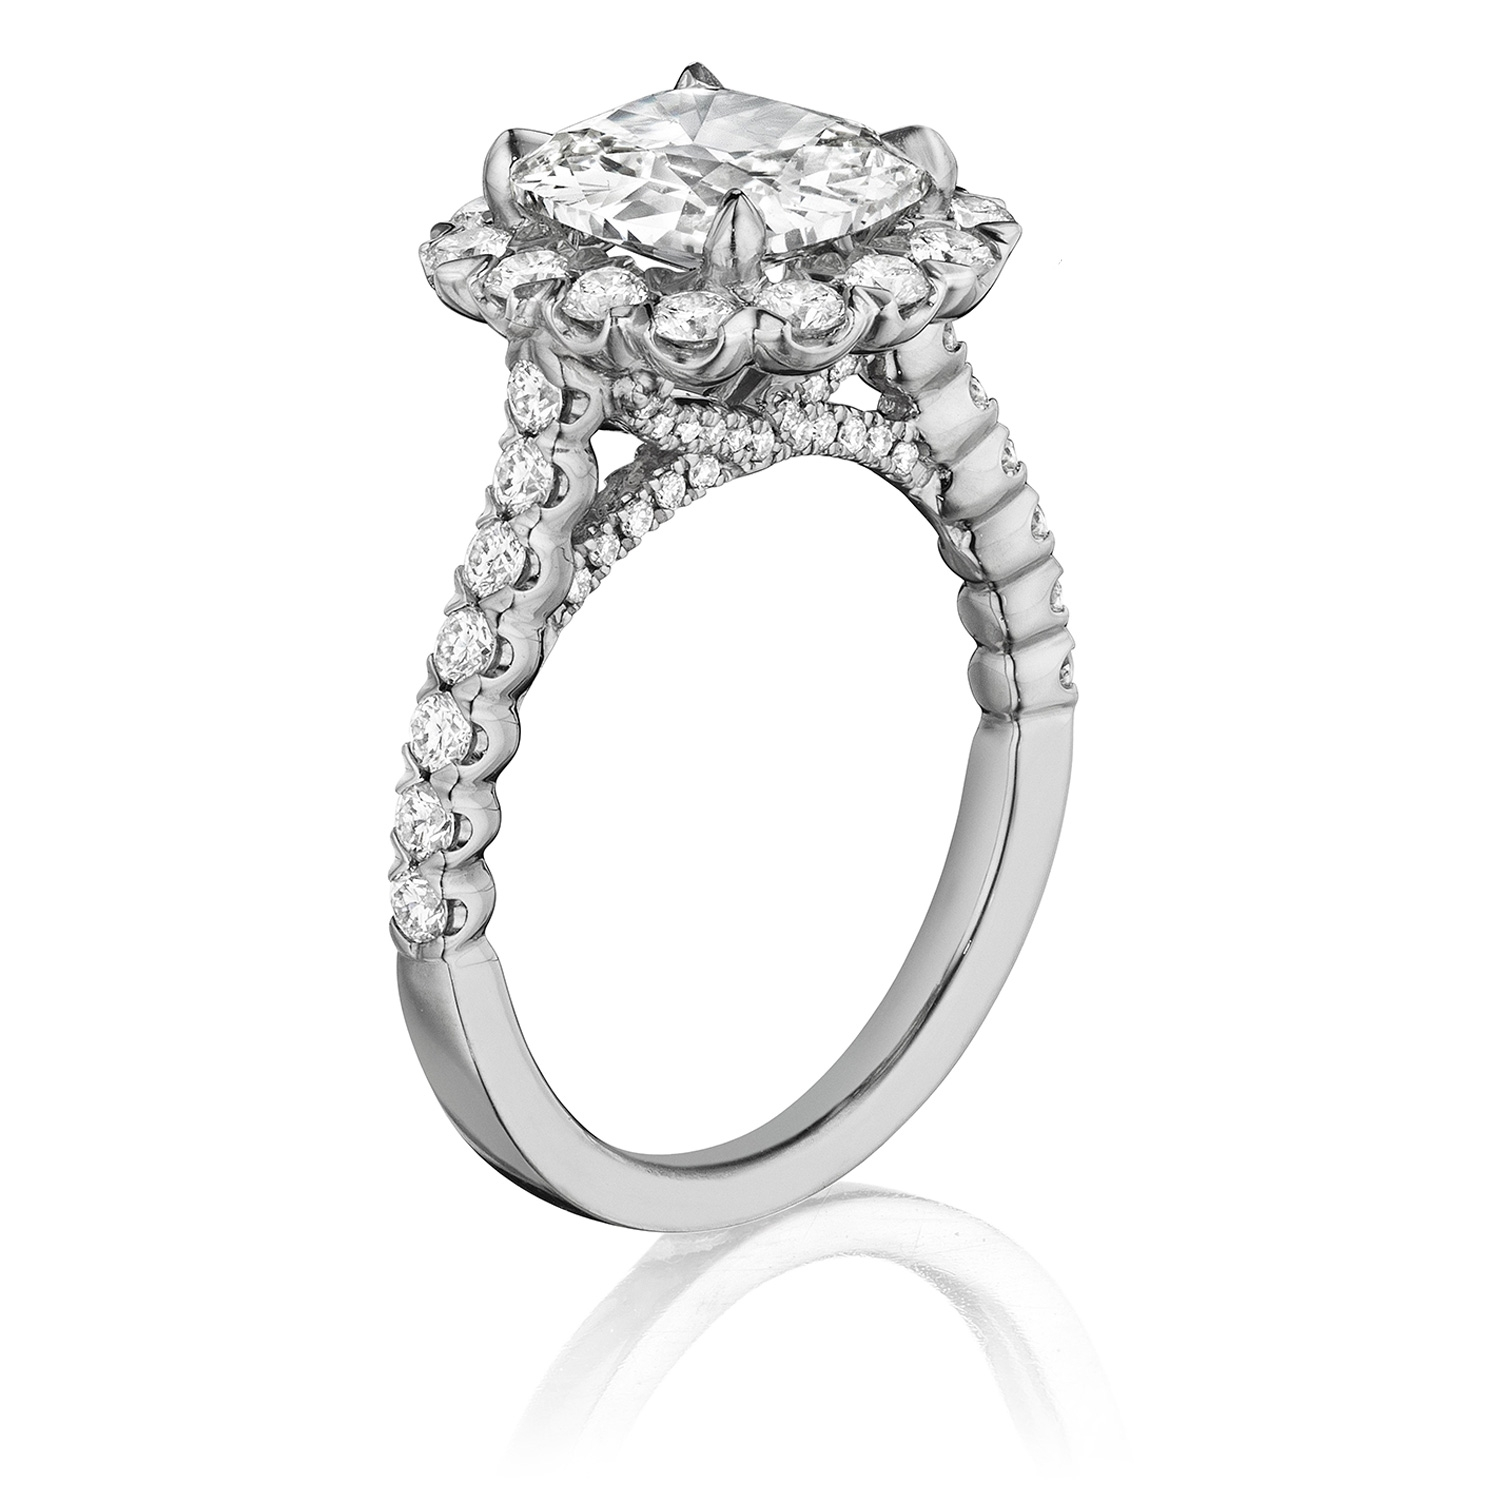 Henri Daussi AJS Unique V-Prong Cushion Halo Diamond Engagement Ring Alternative View 1